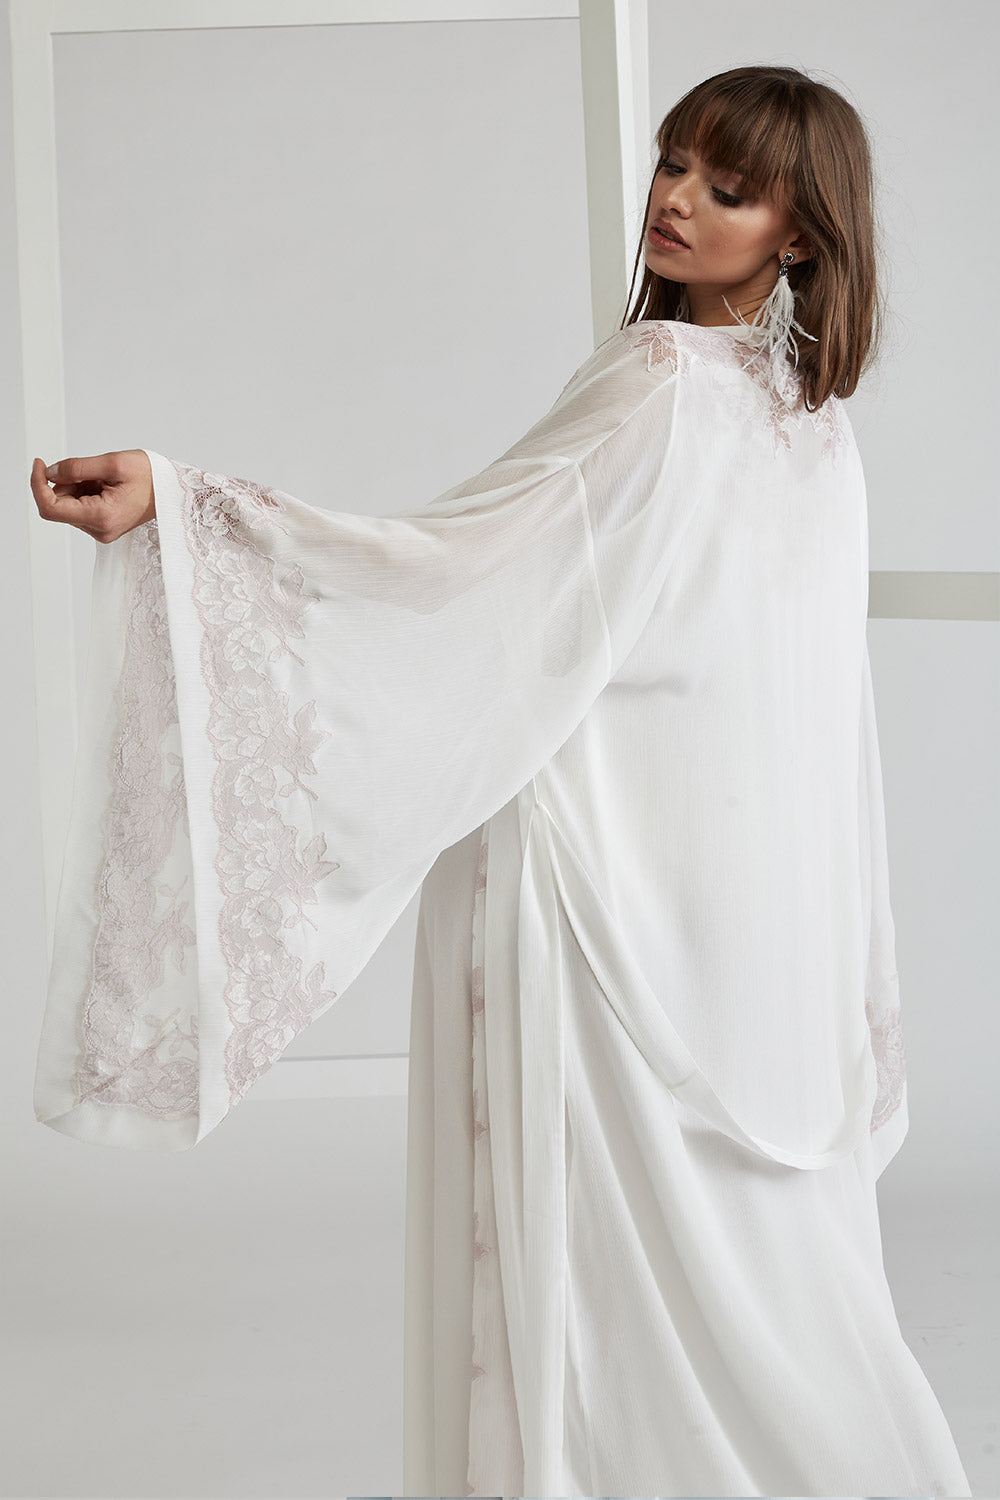 Silk Chiffon Robe Set - Off White - Powder - Sofia